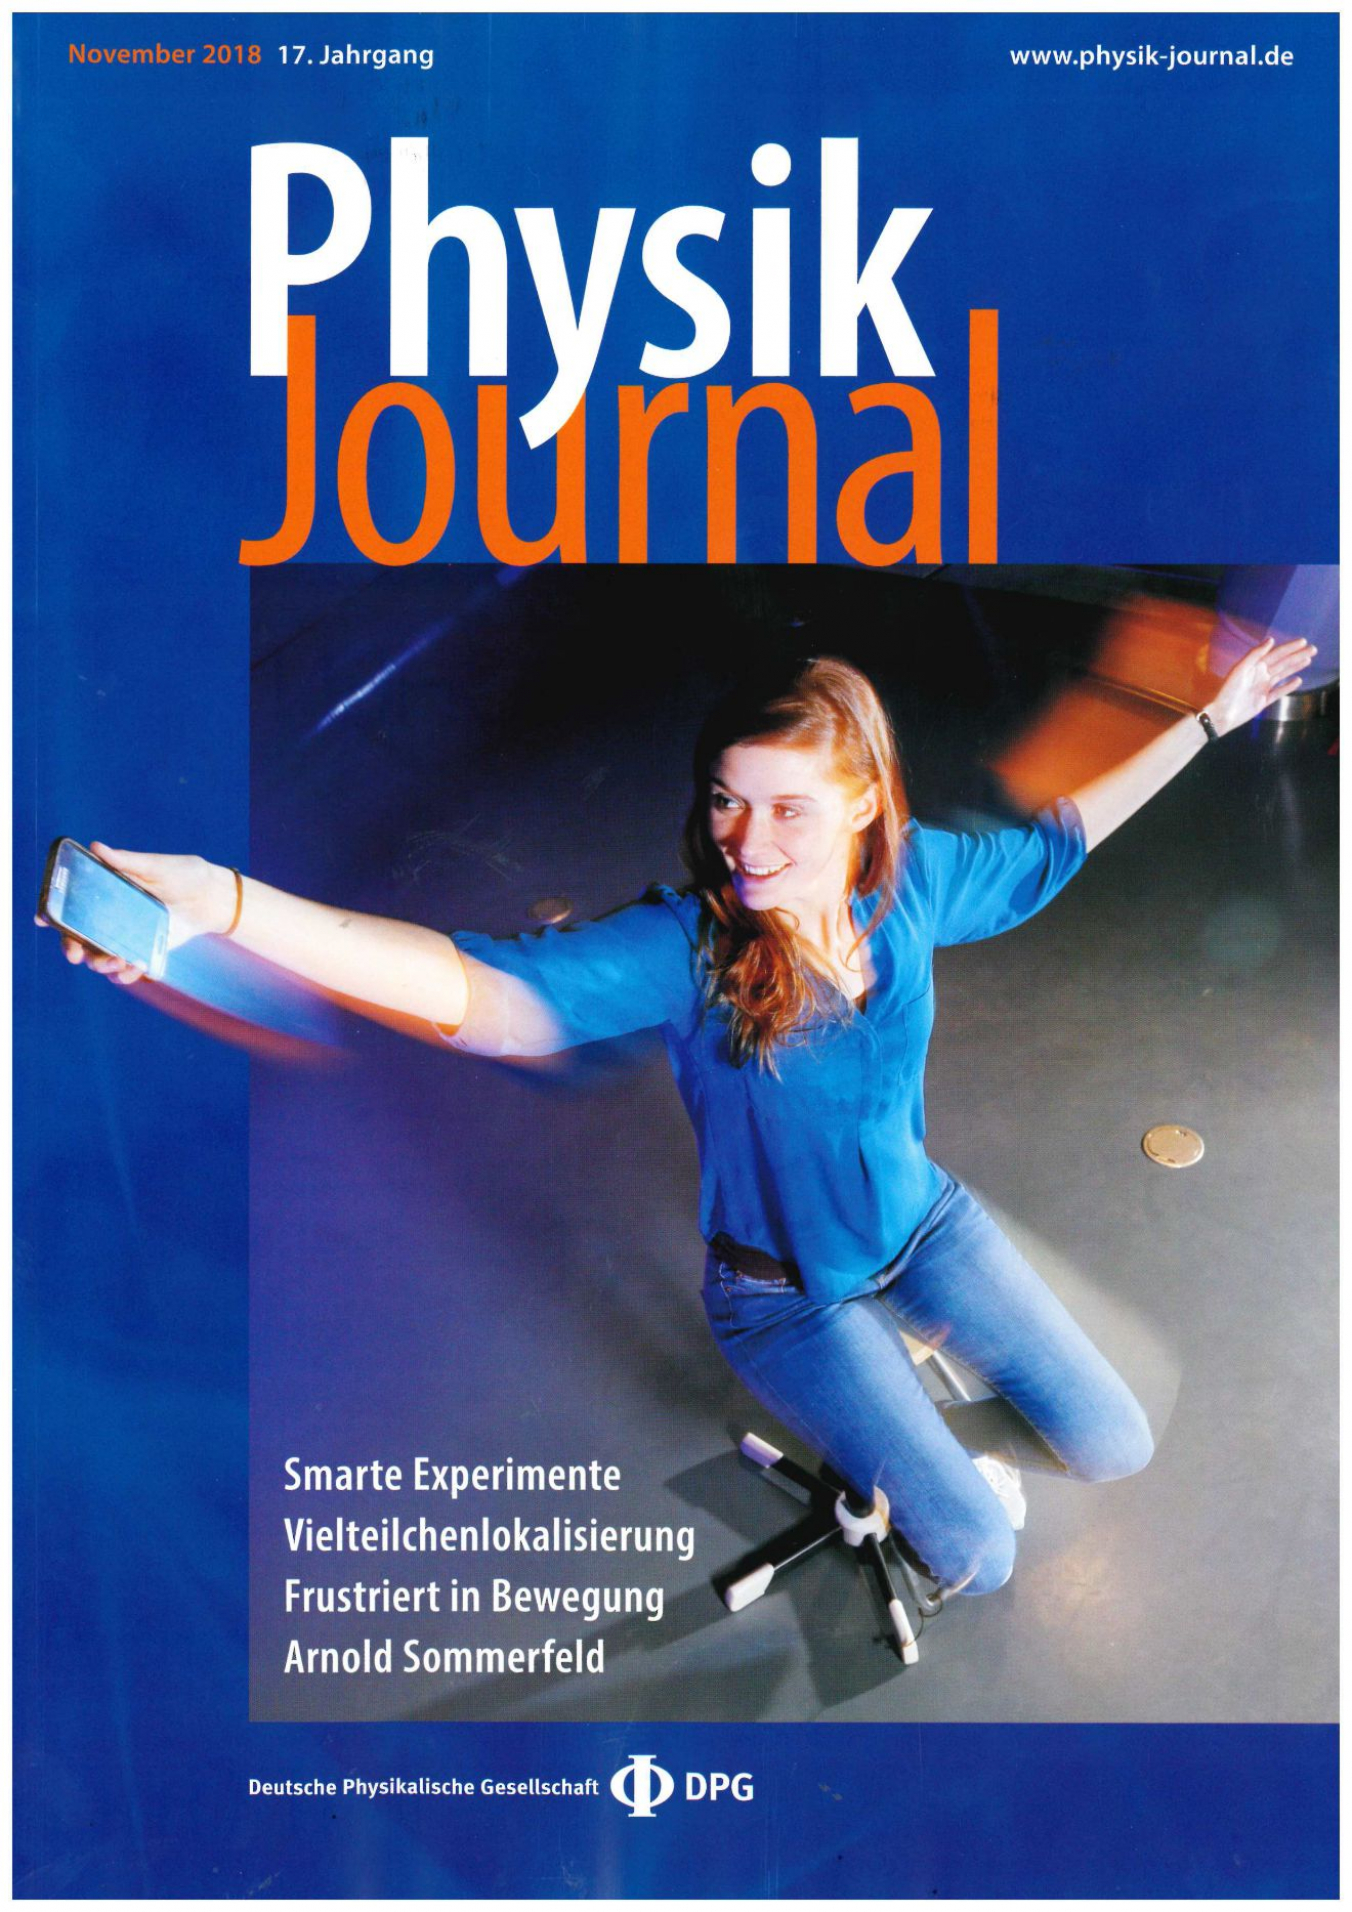 ../../images/news/Physik_Journal_Cover.jpg